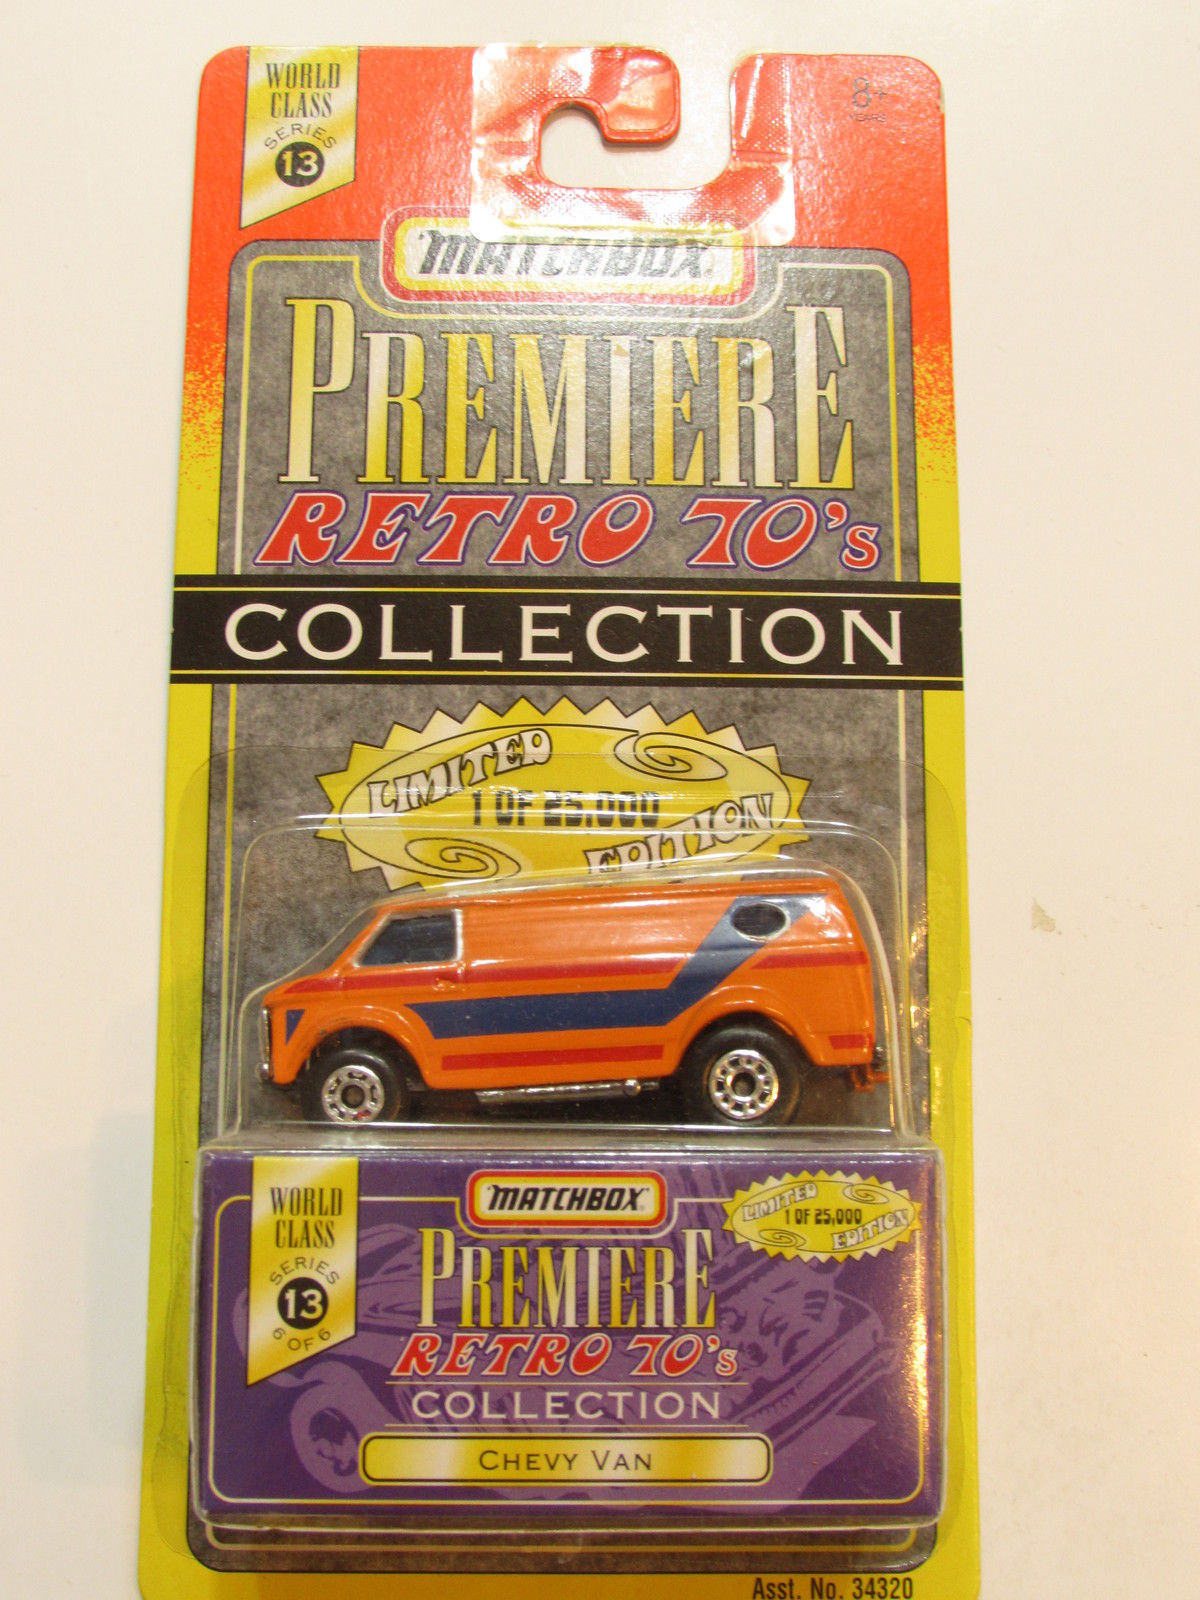 MATCHBOX PREMIERE COLLECTION RETRO 70'S - WORLD CLASS SERIES 13 - CHEVY VAN